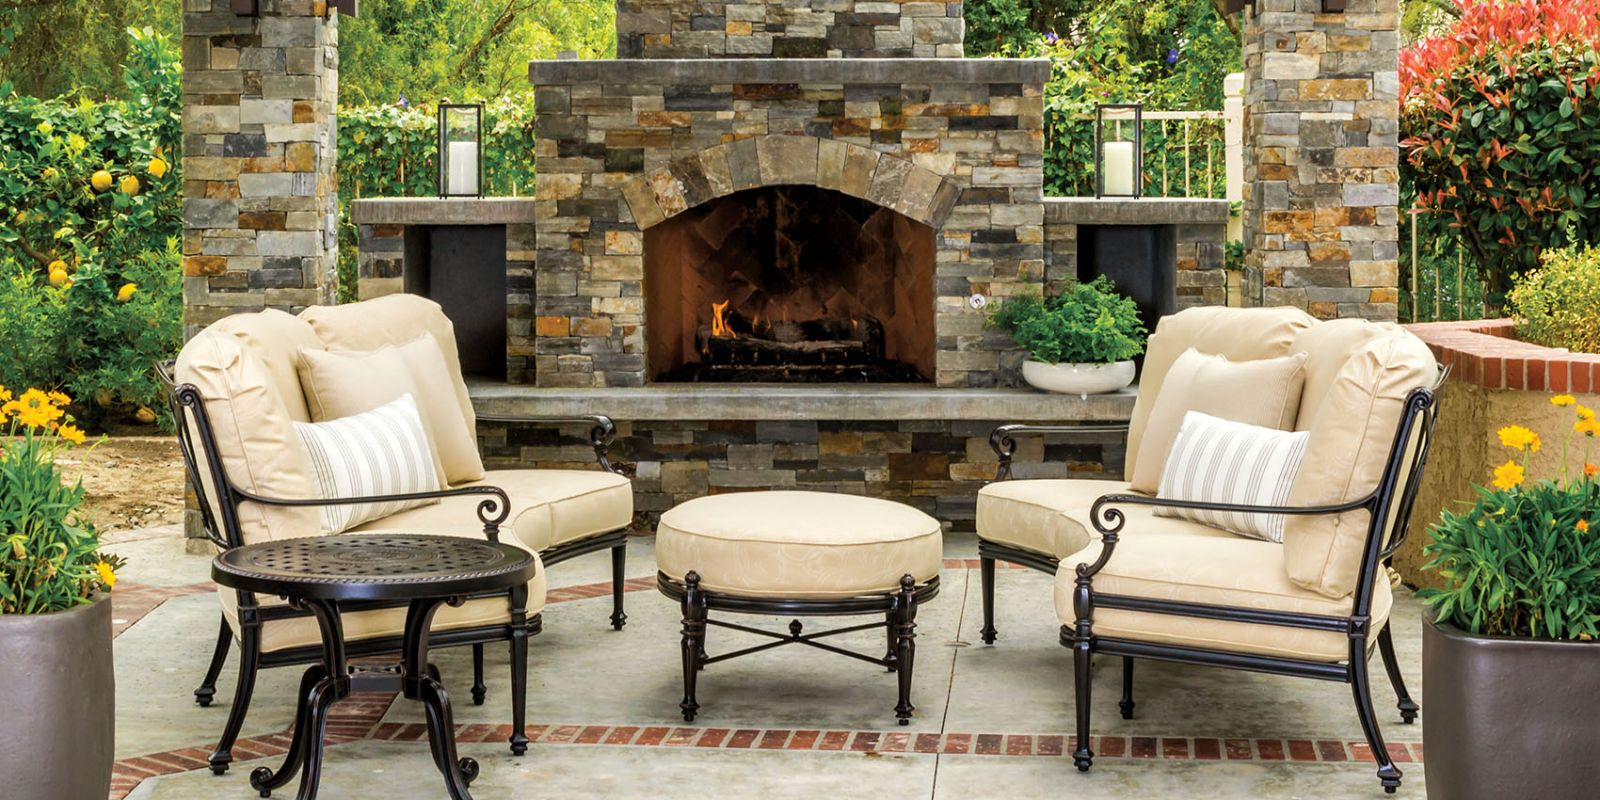 Outdoor Patio Design Specialist | American Casual Living on Casual Living Patio id=79471